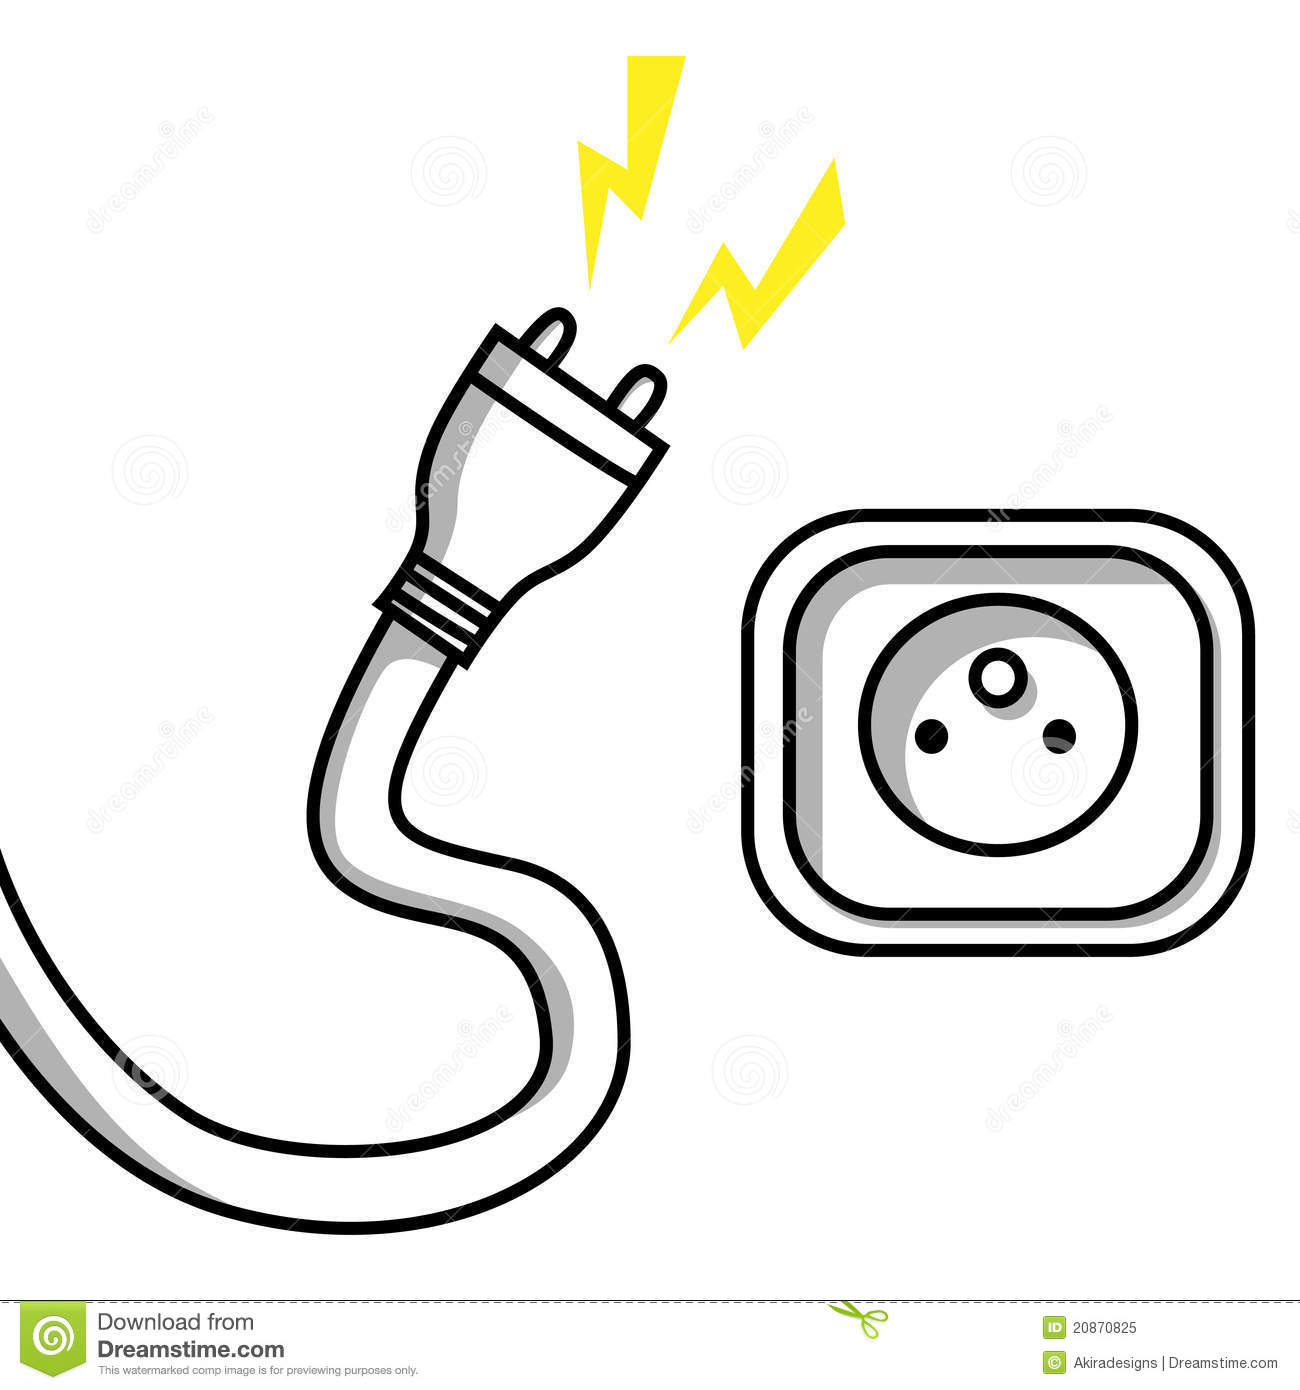 Plug And Socket Stock Vector Illustration Of Industrial